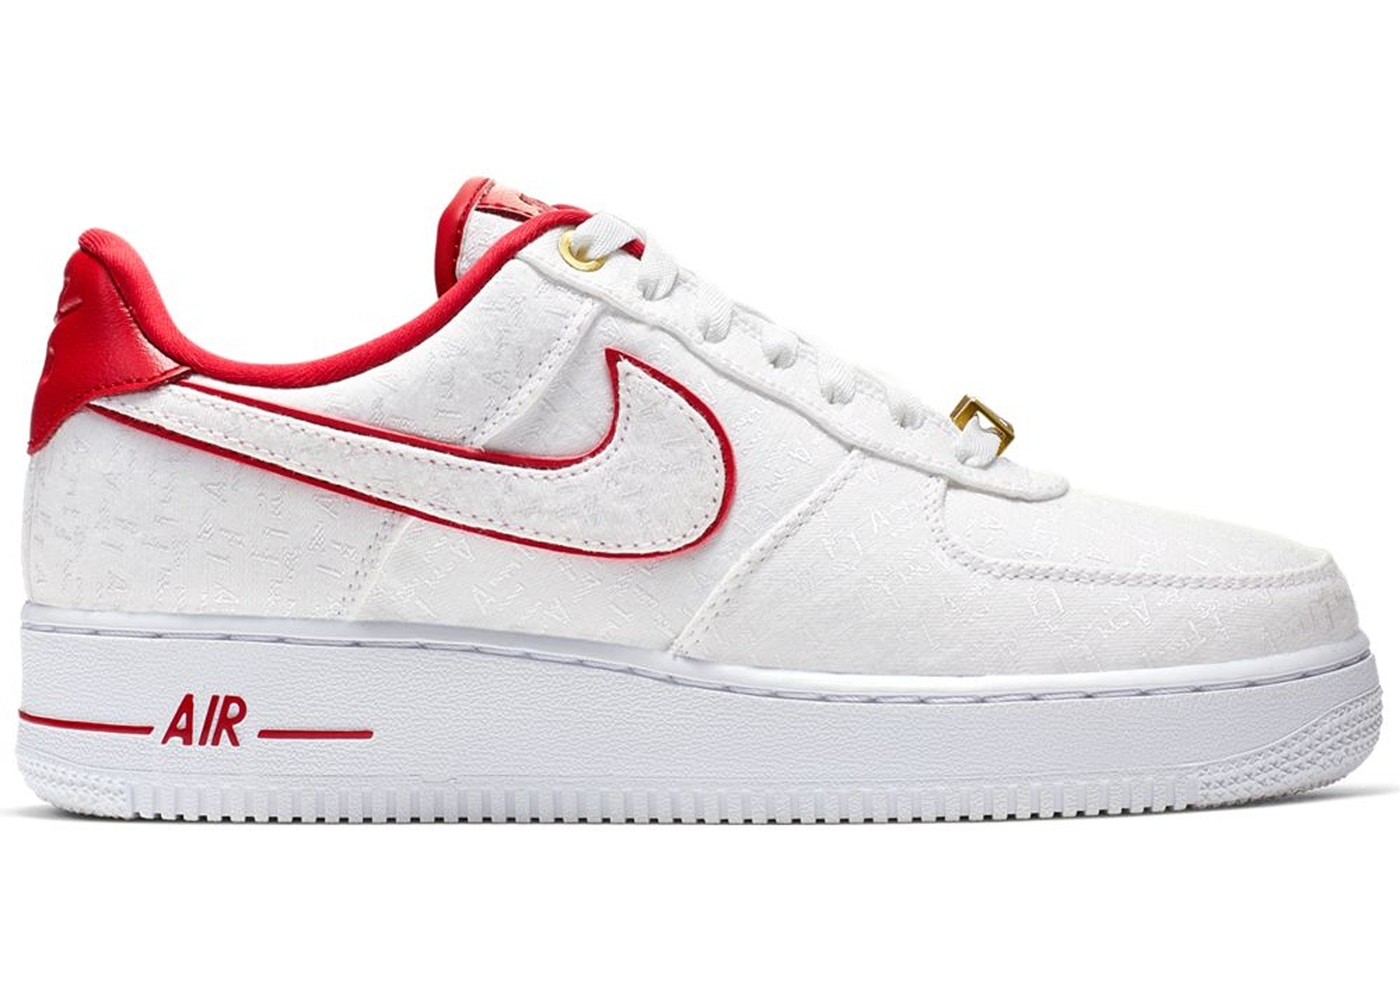 Nike Air Force 1 Low Lux White Red (W)